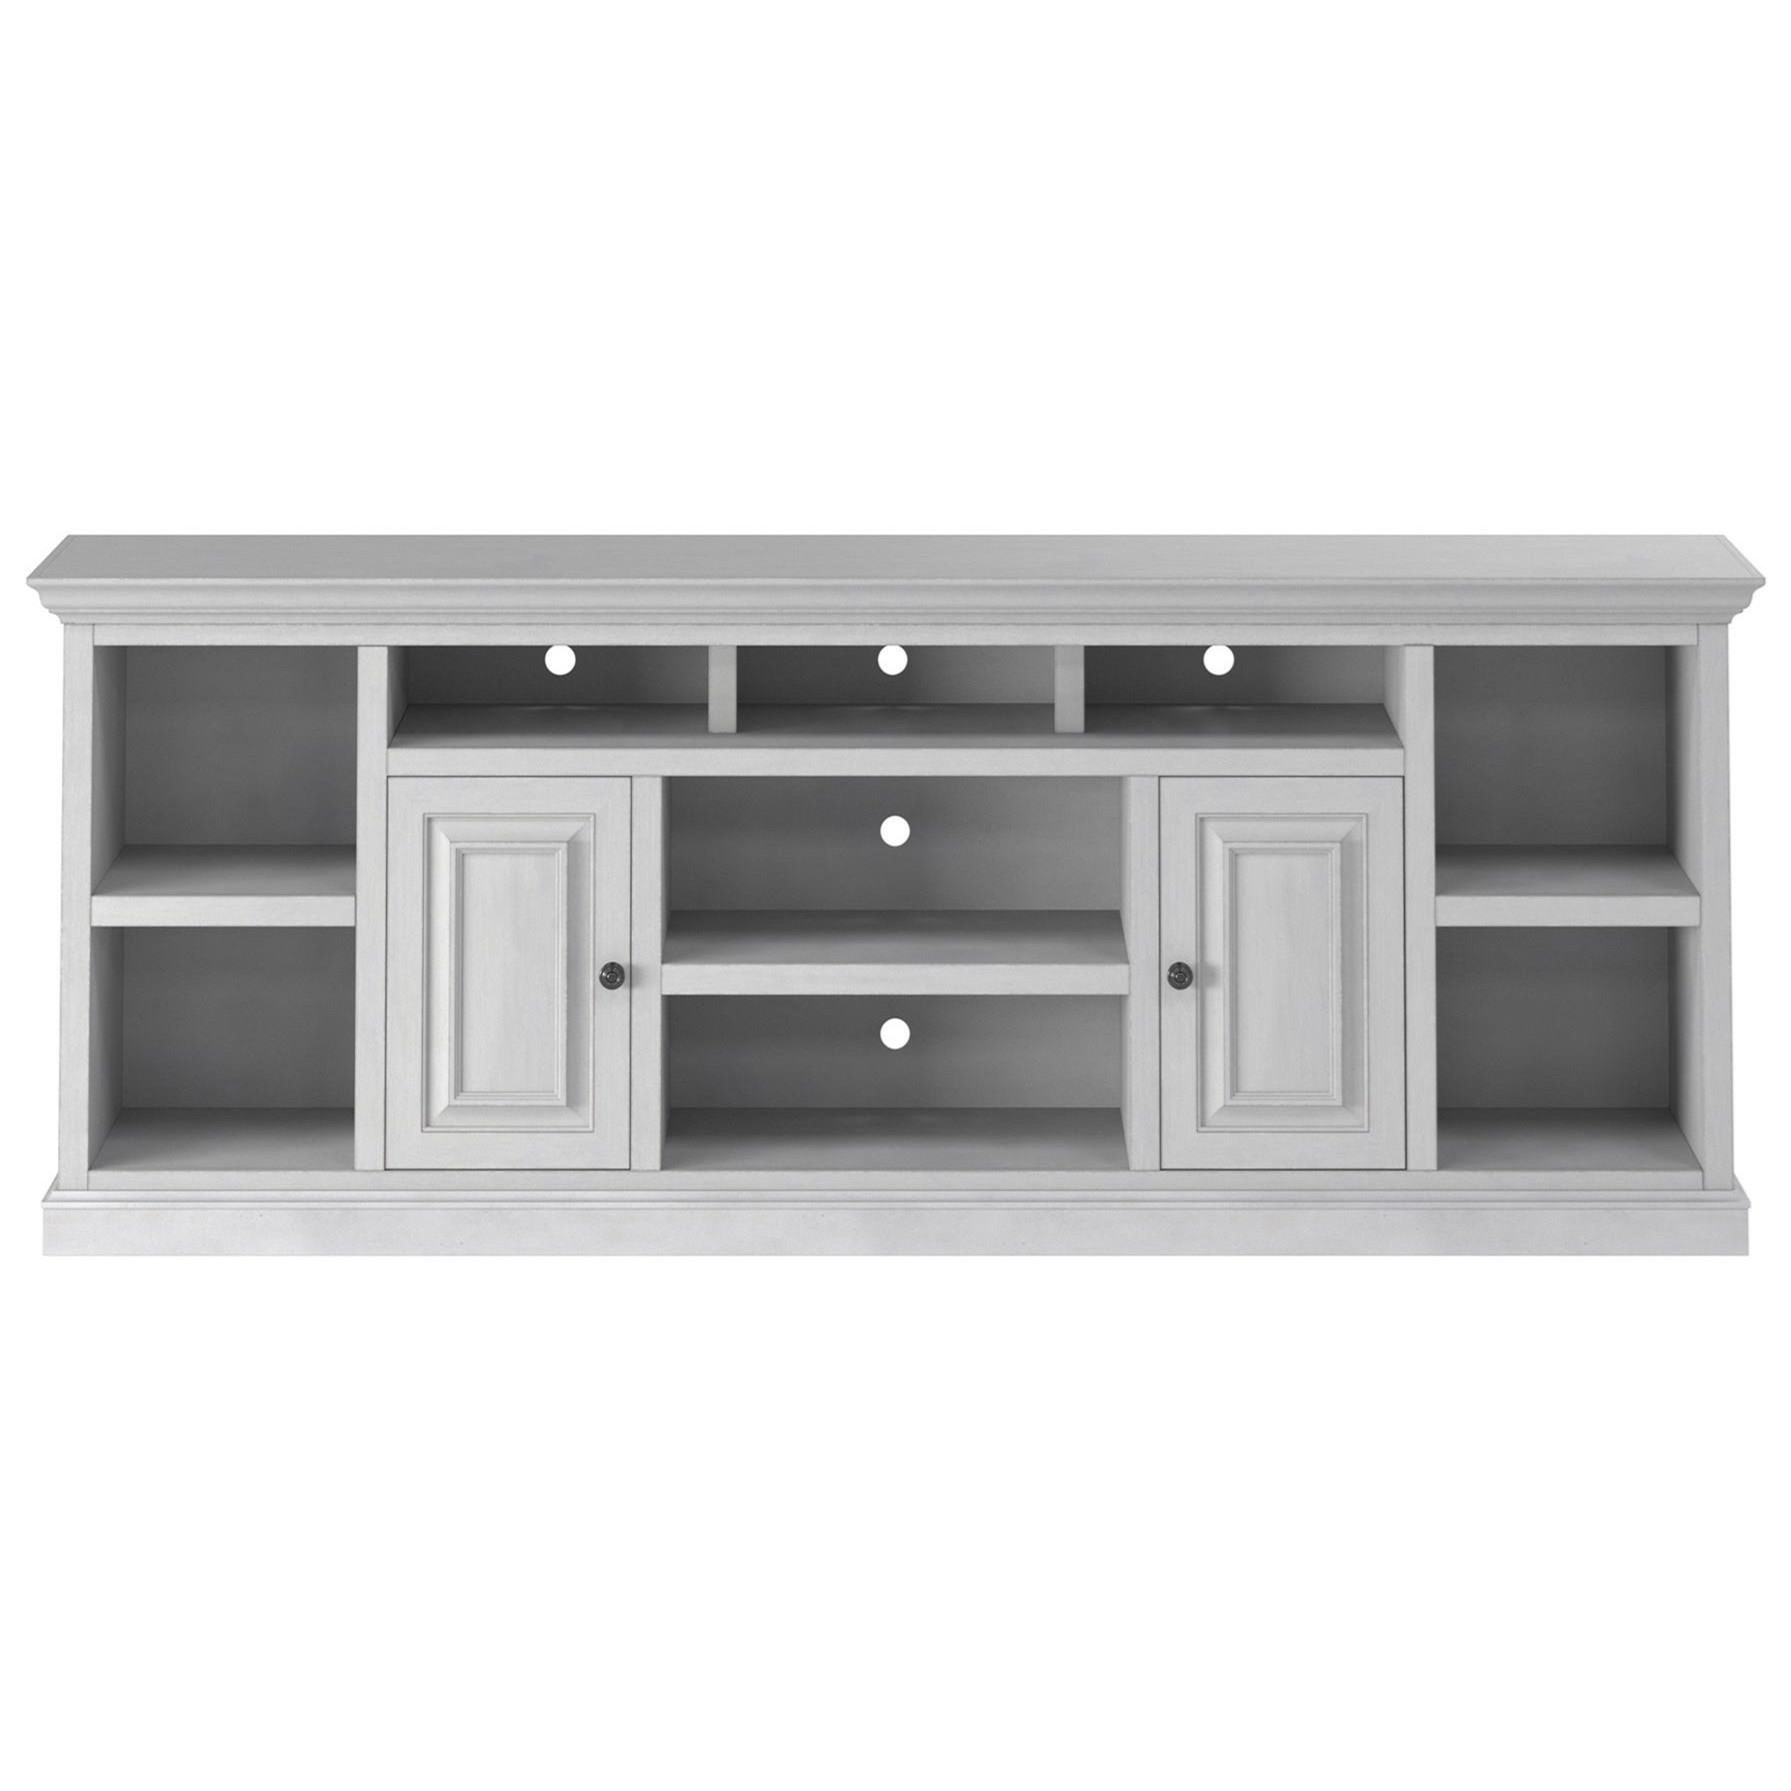 "Largo-LG 87"" TV Stand  by Legends Furniture at SuperStore"